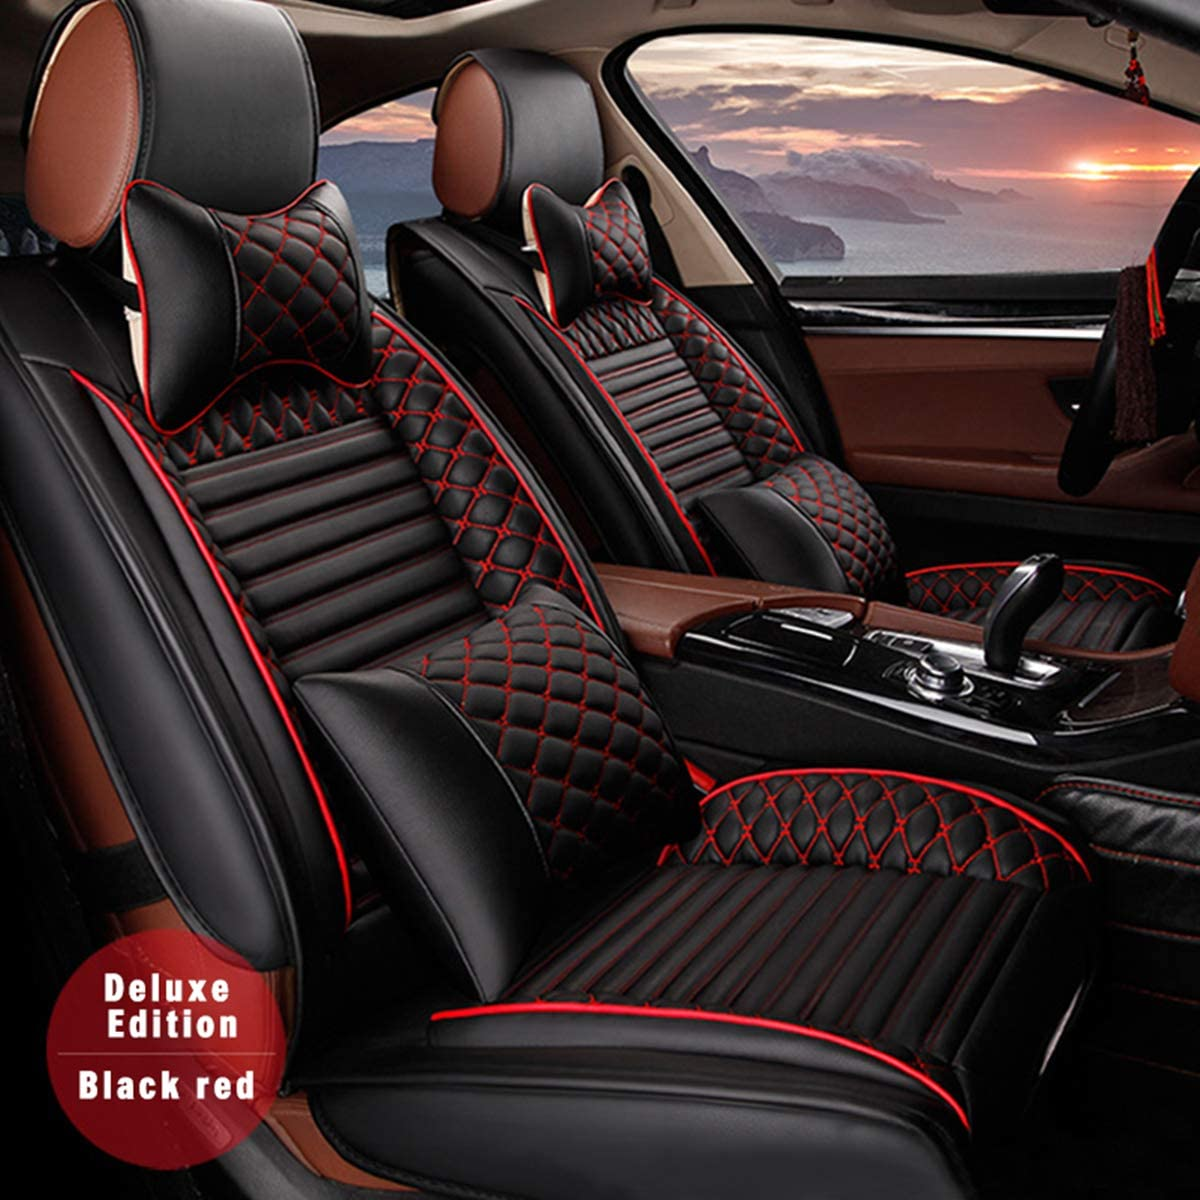 for DS Universal 5-Seats Car Seat Covers PU Leather Waterproof Seats Cushion All Season Fit Most Car, Truck, SUV, or Van Front Seat+Rear Seat 9Pcs Luxury Edition Black with Red